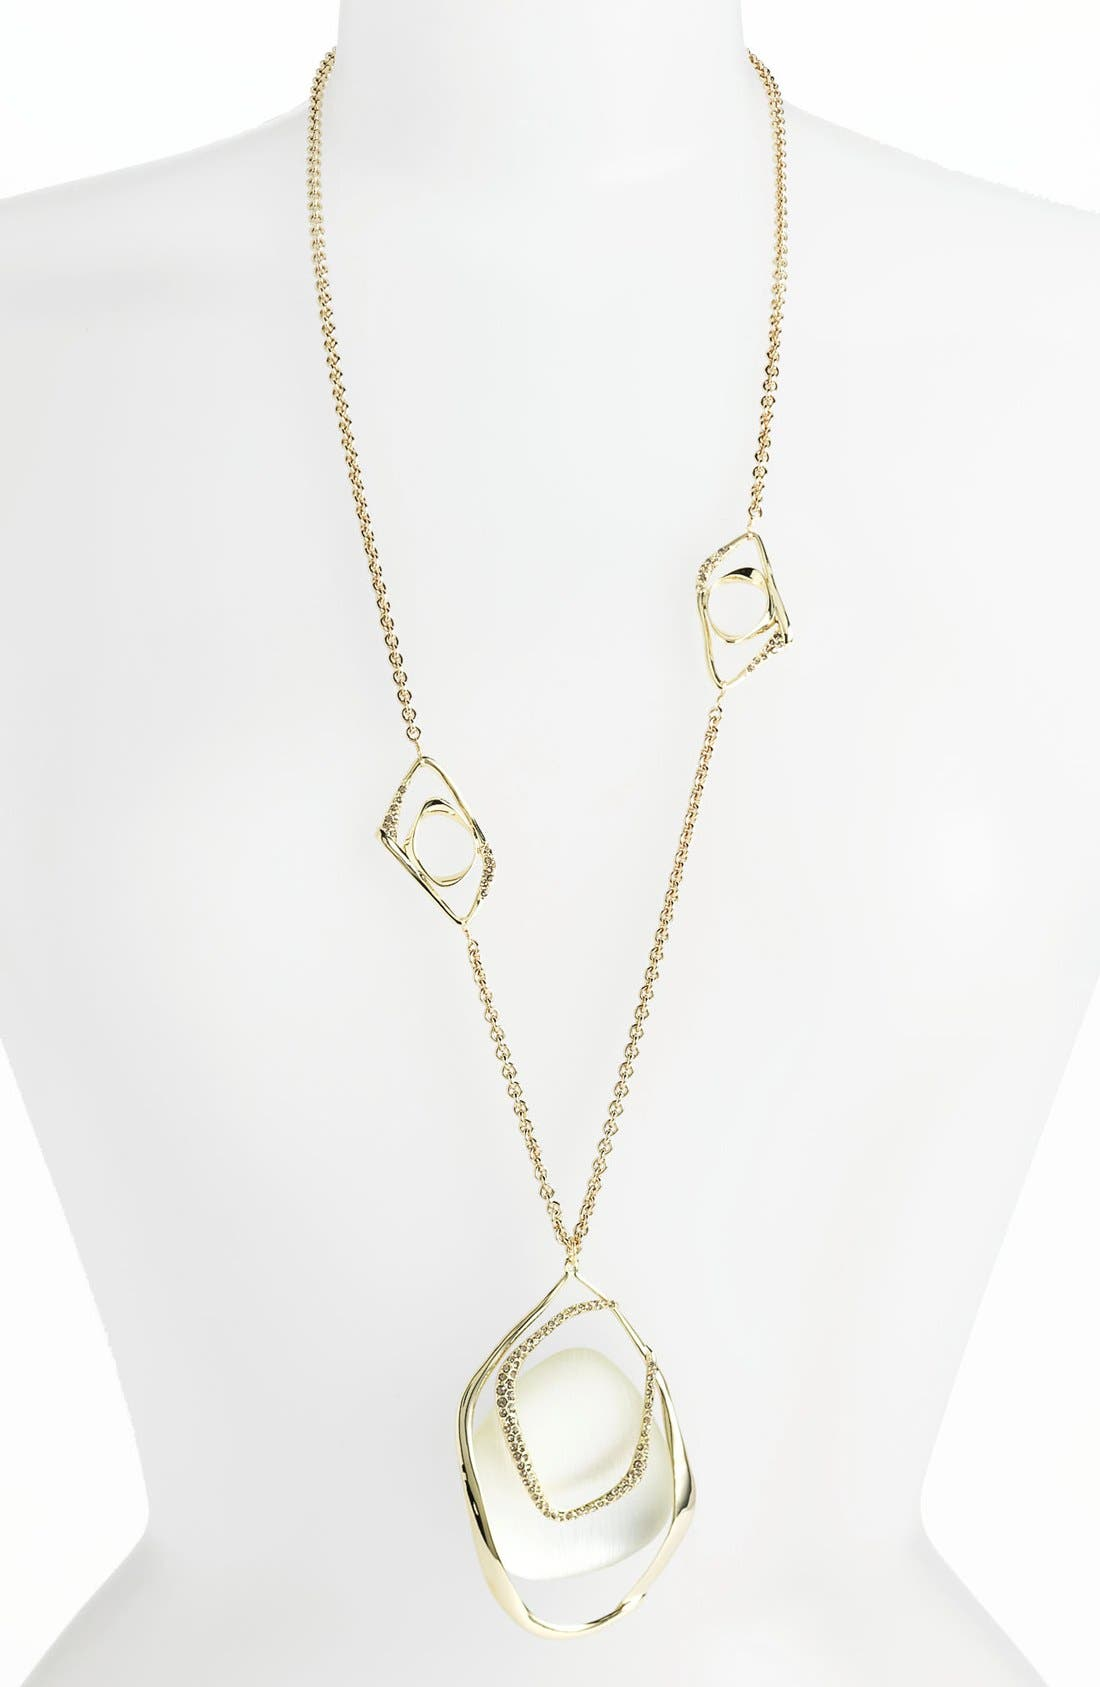 Alternate Image 1 Selected - Alexis Bittar 'Lucite® - Mod' Long Pendant Necklace